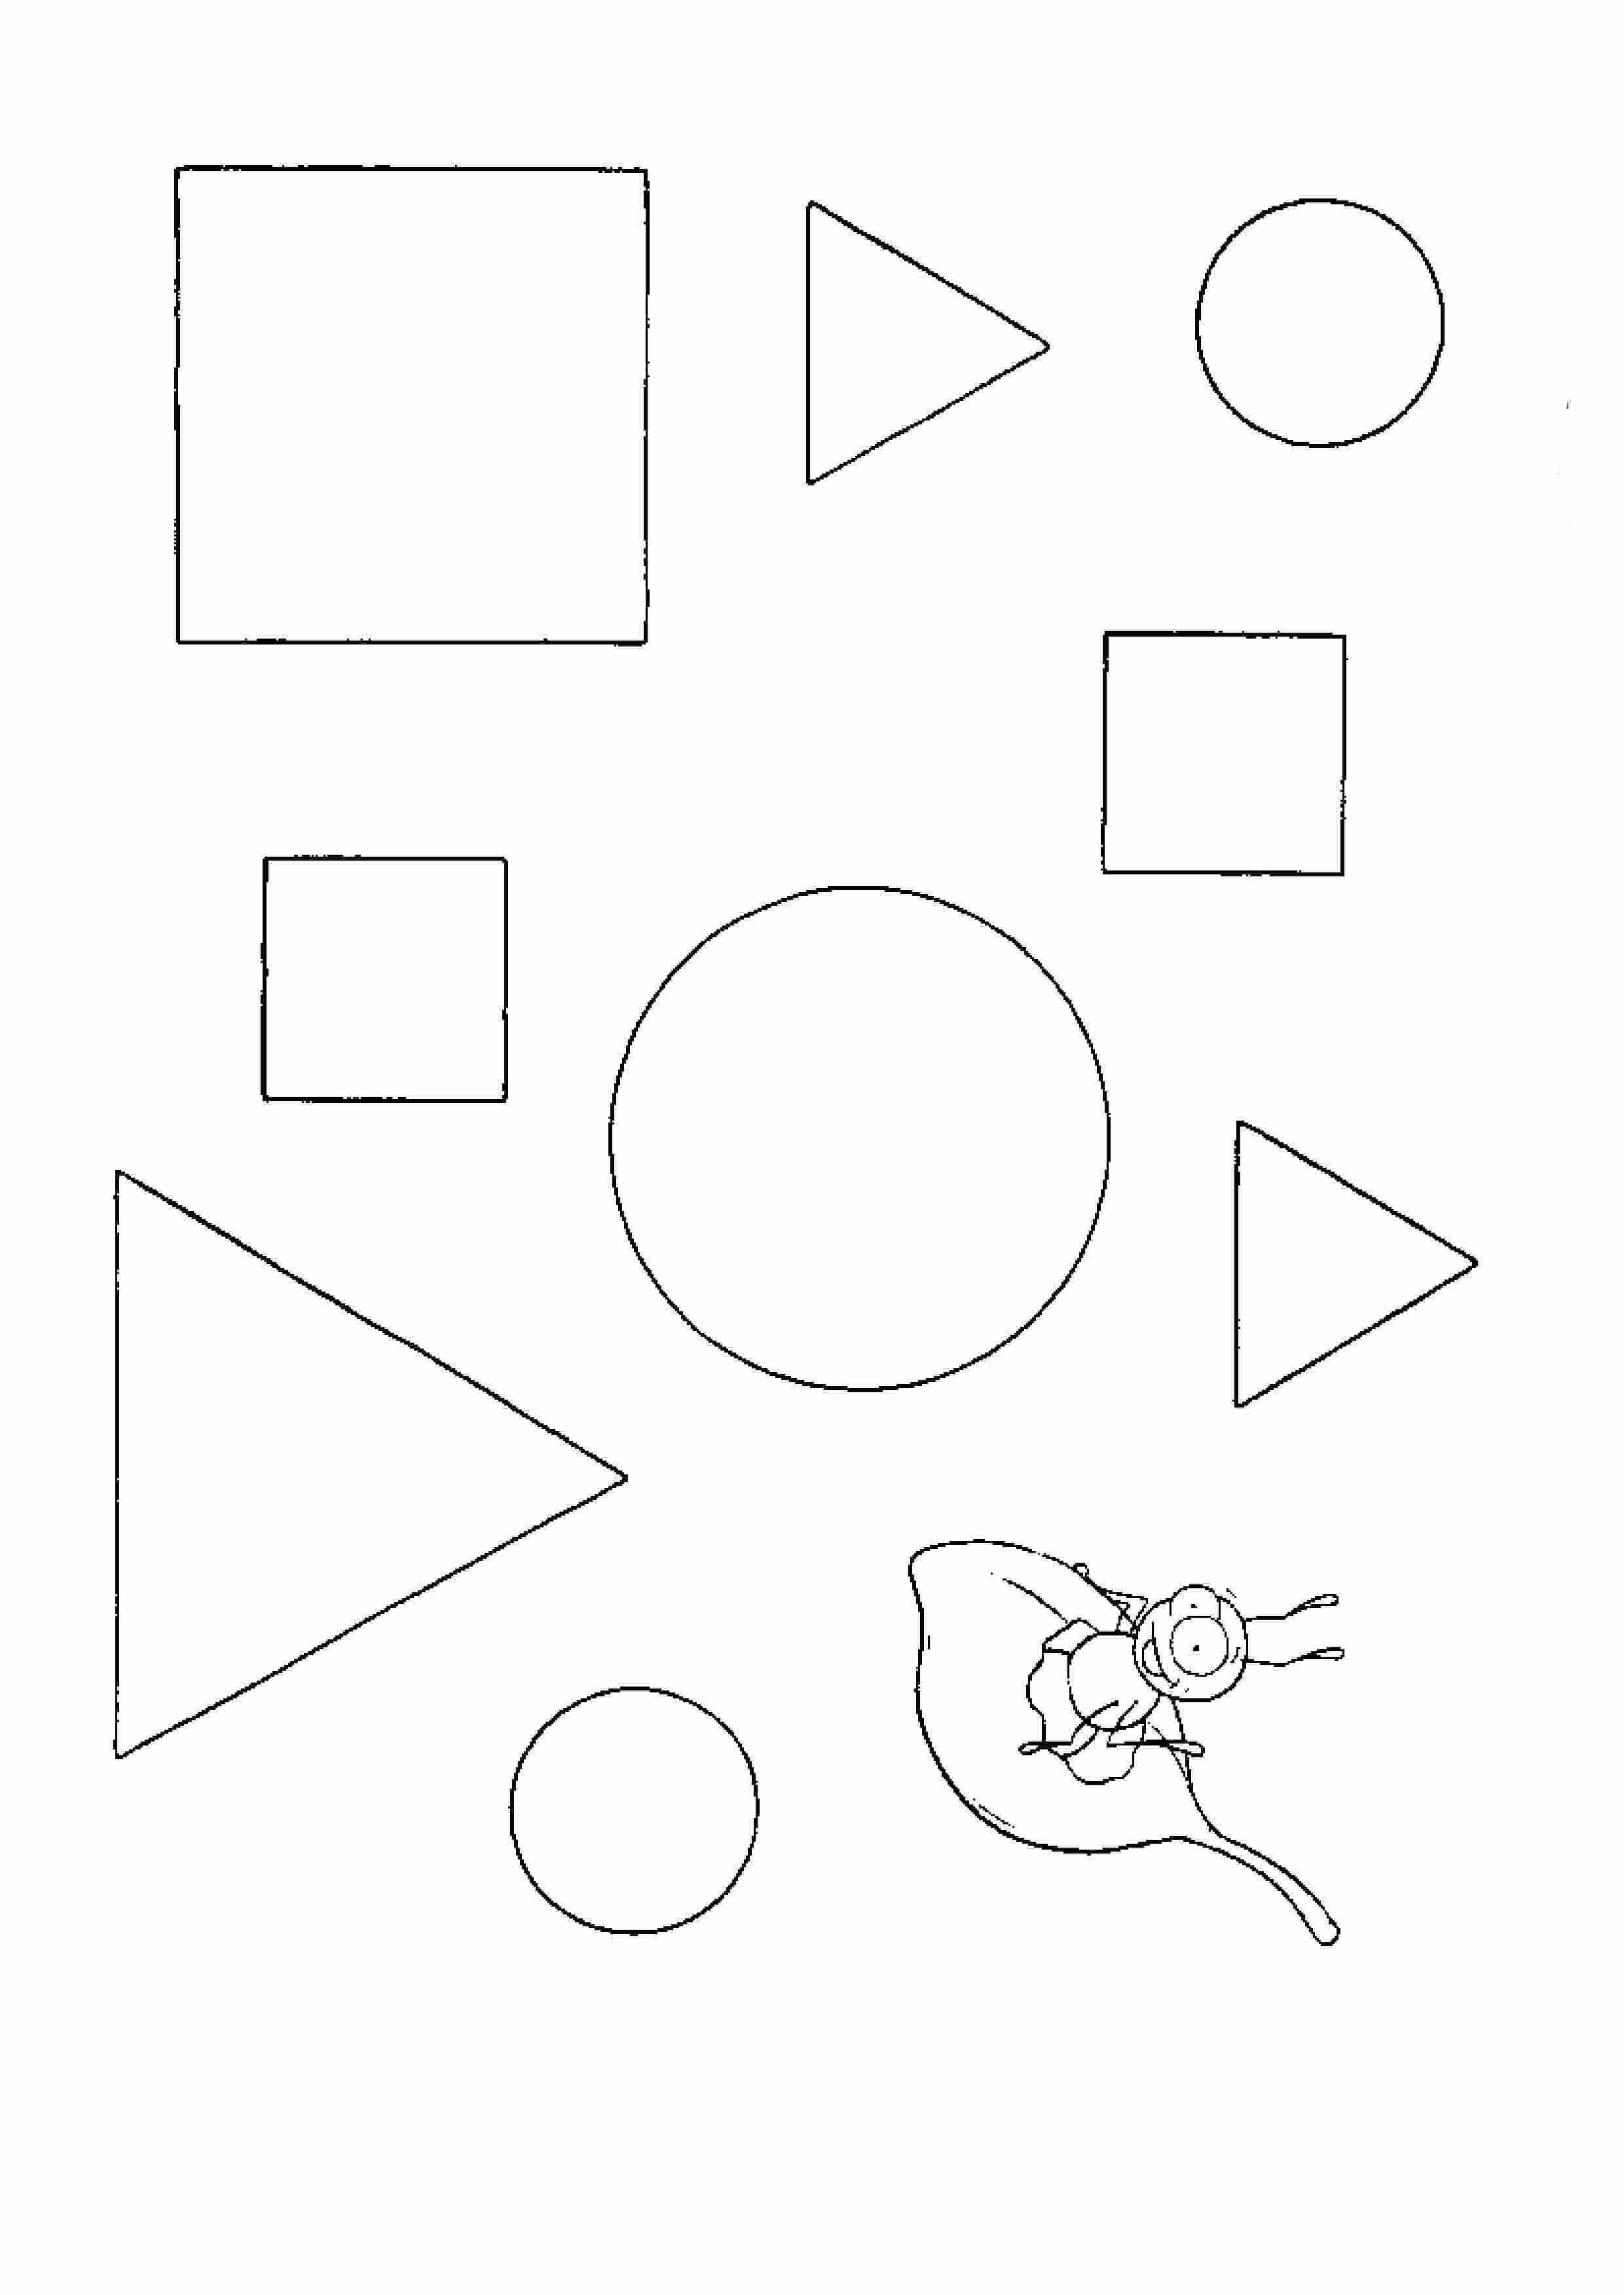 Printable Worksheets For Kids Search And Coloring 14